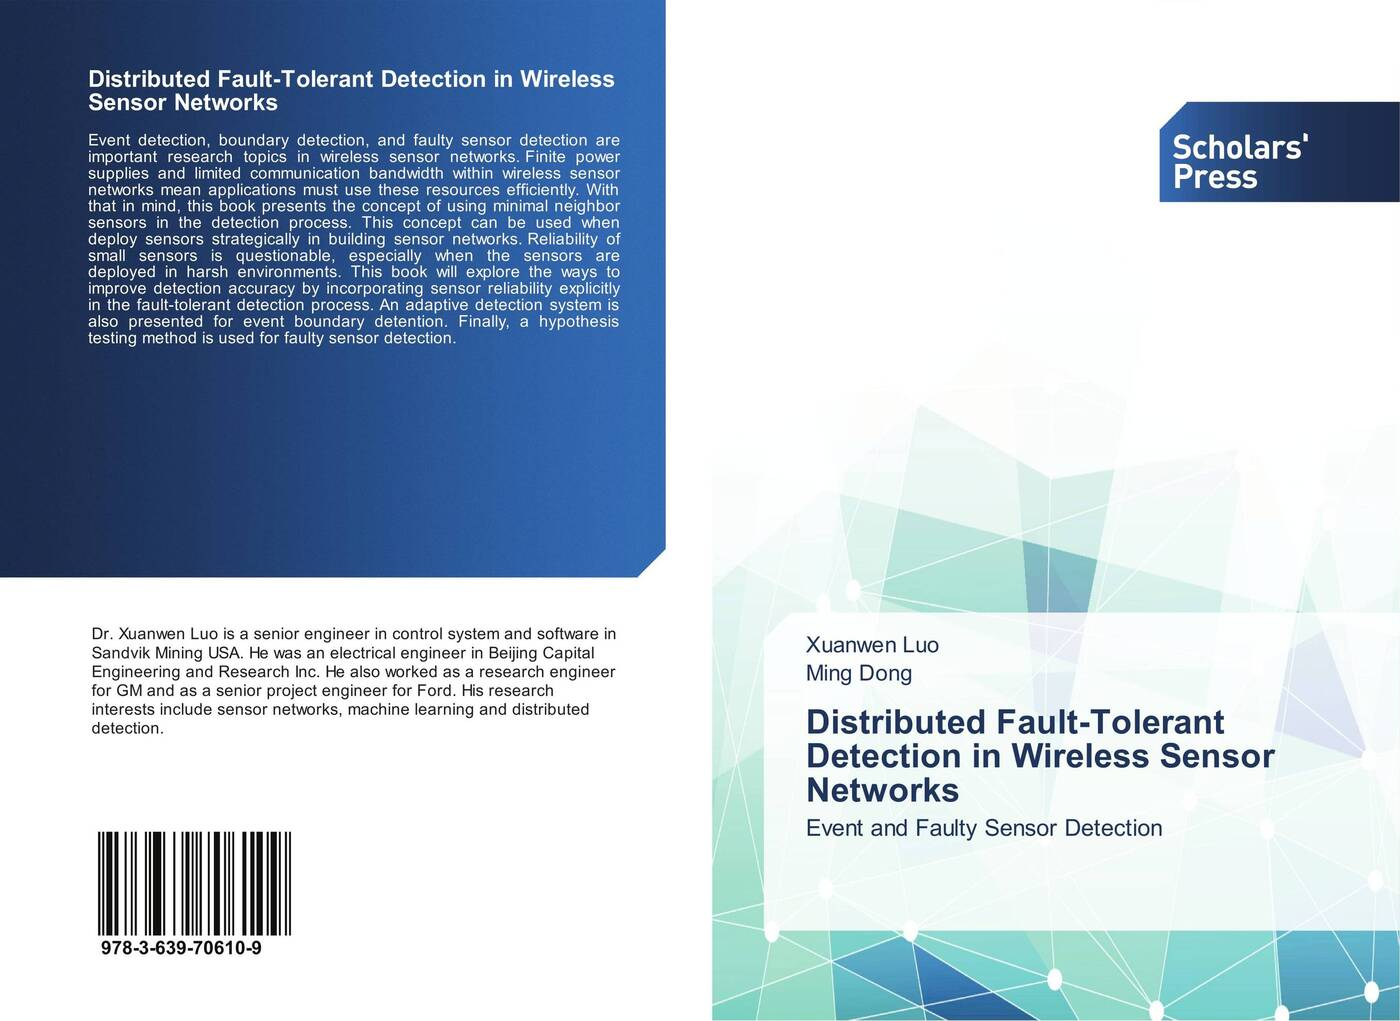 купить Xuanwen Luo and Ming Dong Distributed Fault-Tolerant Detection in Wireless Sensor Networks дешево